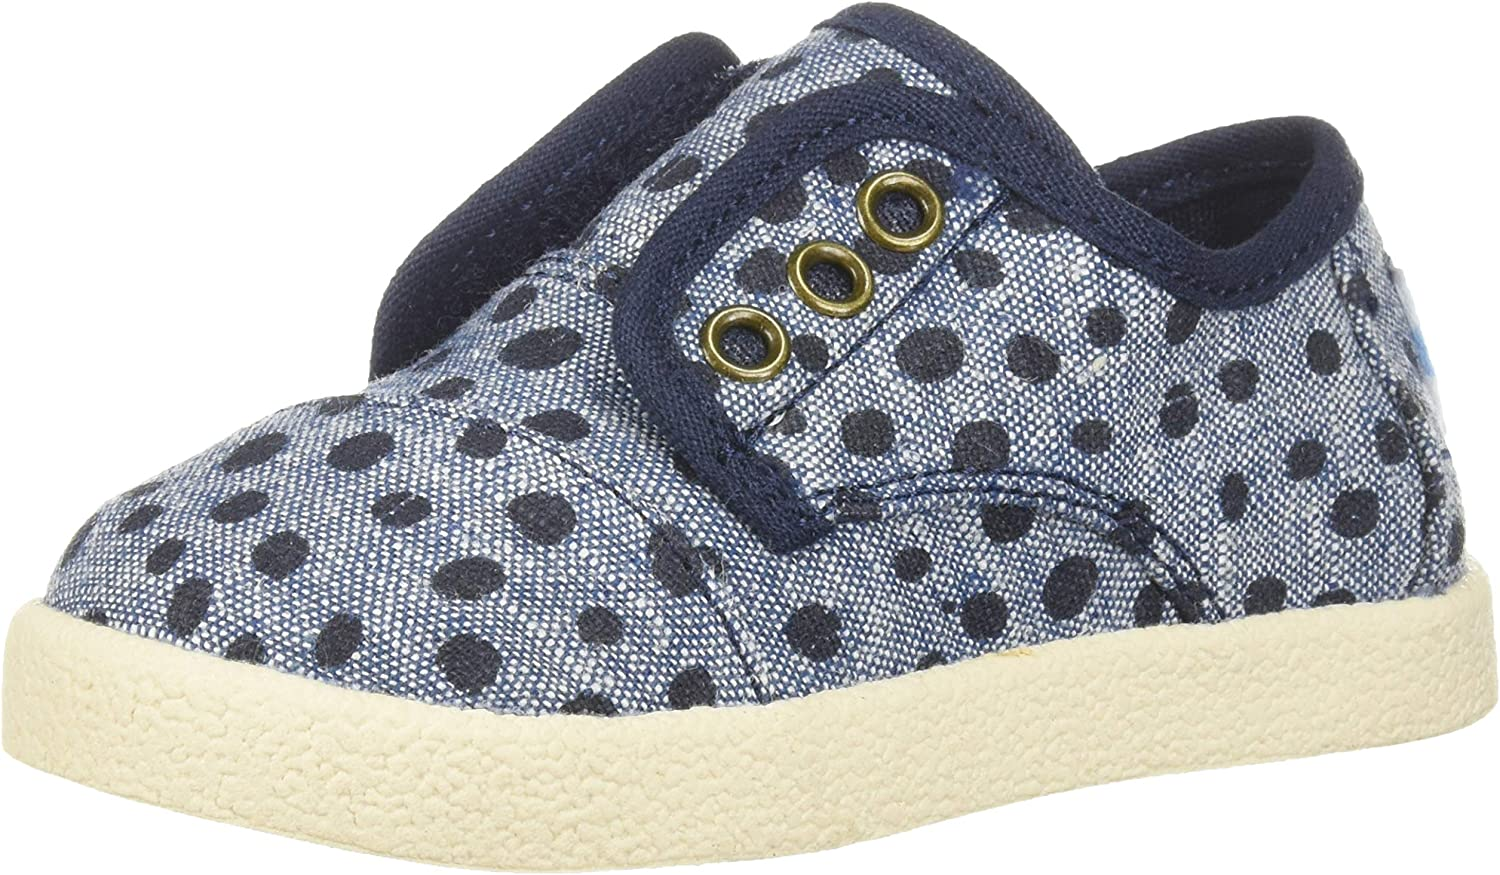 TOMS Unisex-Child Philadelphia Mall Sneaker Paseo Outlet ☆ Free Shipping